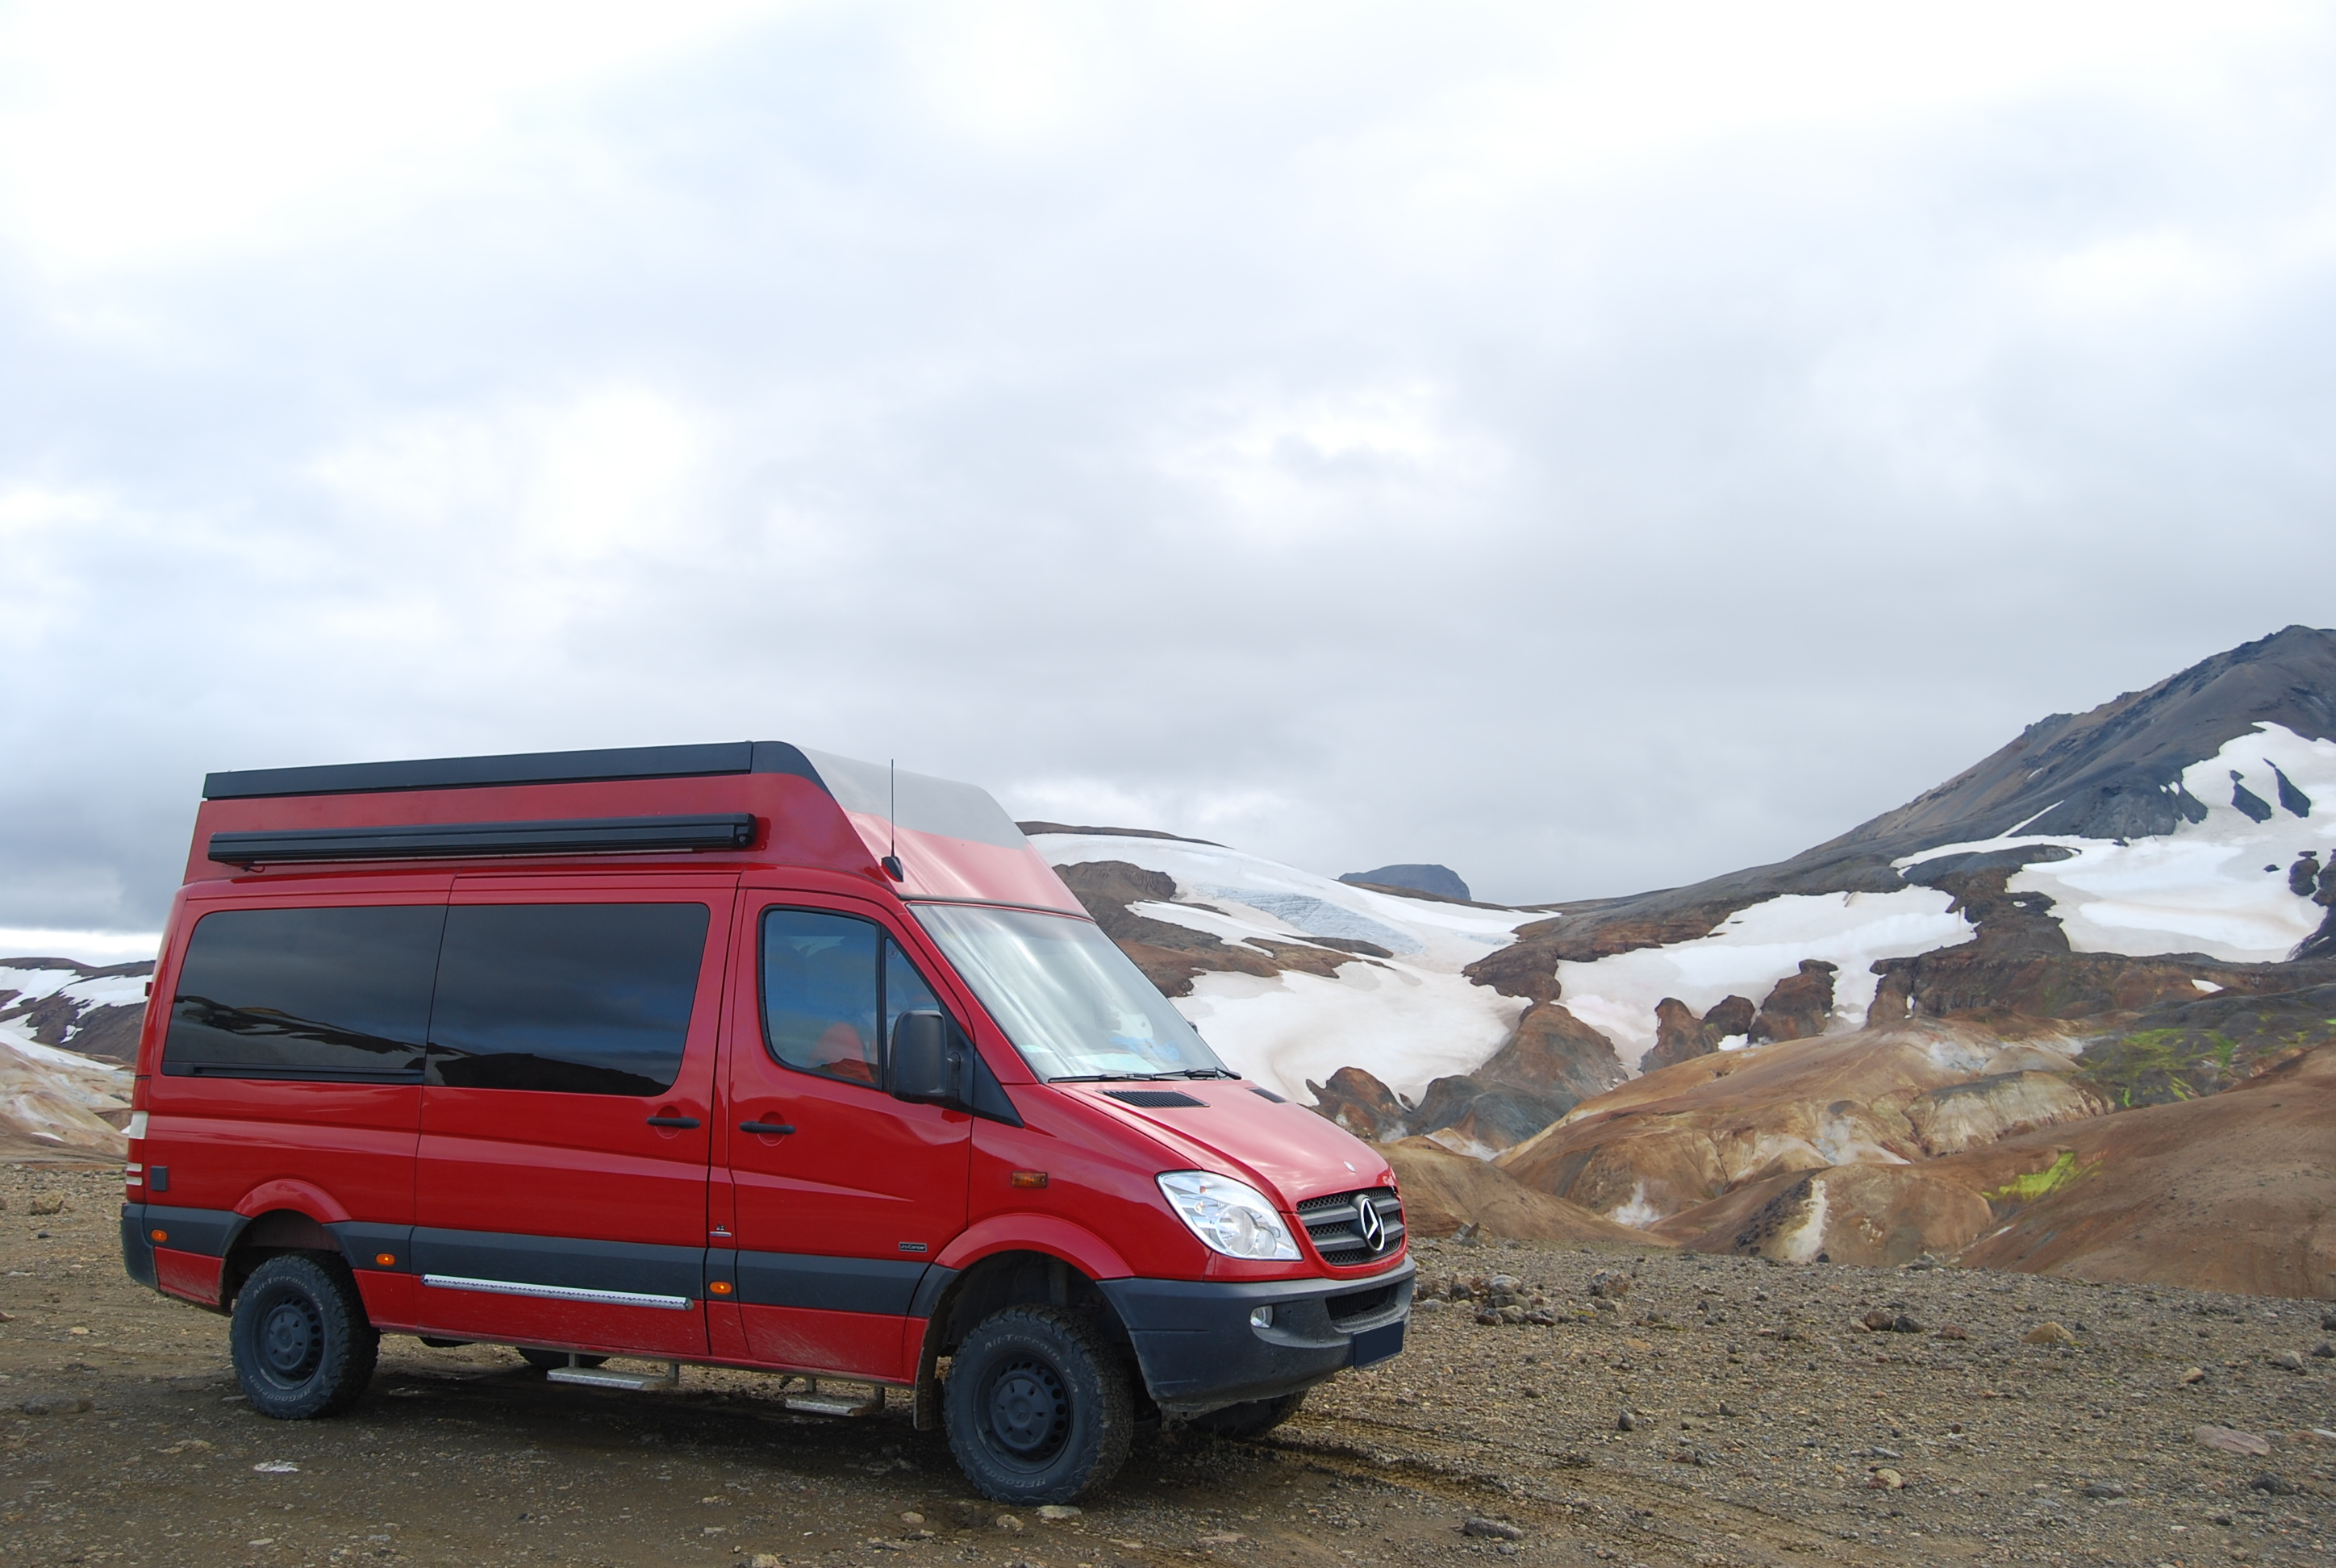 4x4 camper in snow mountains